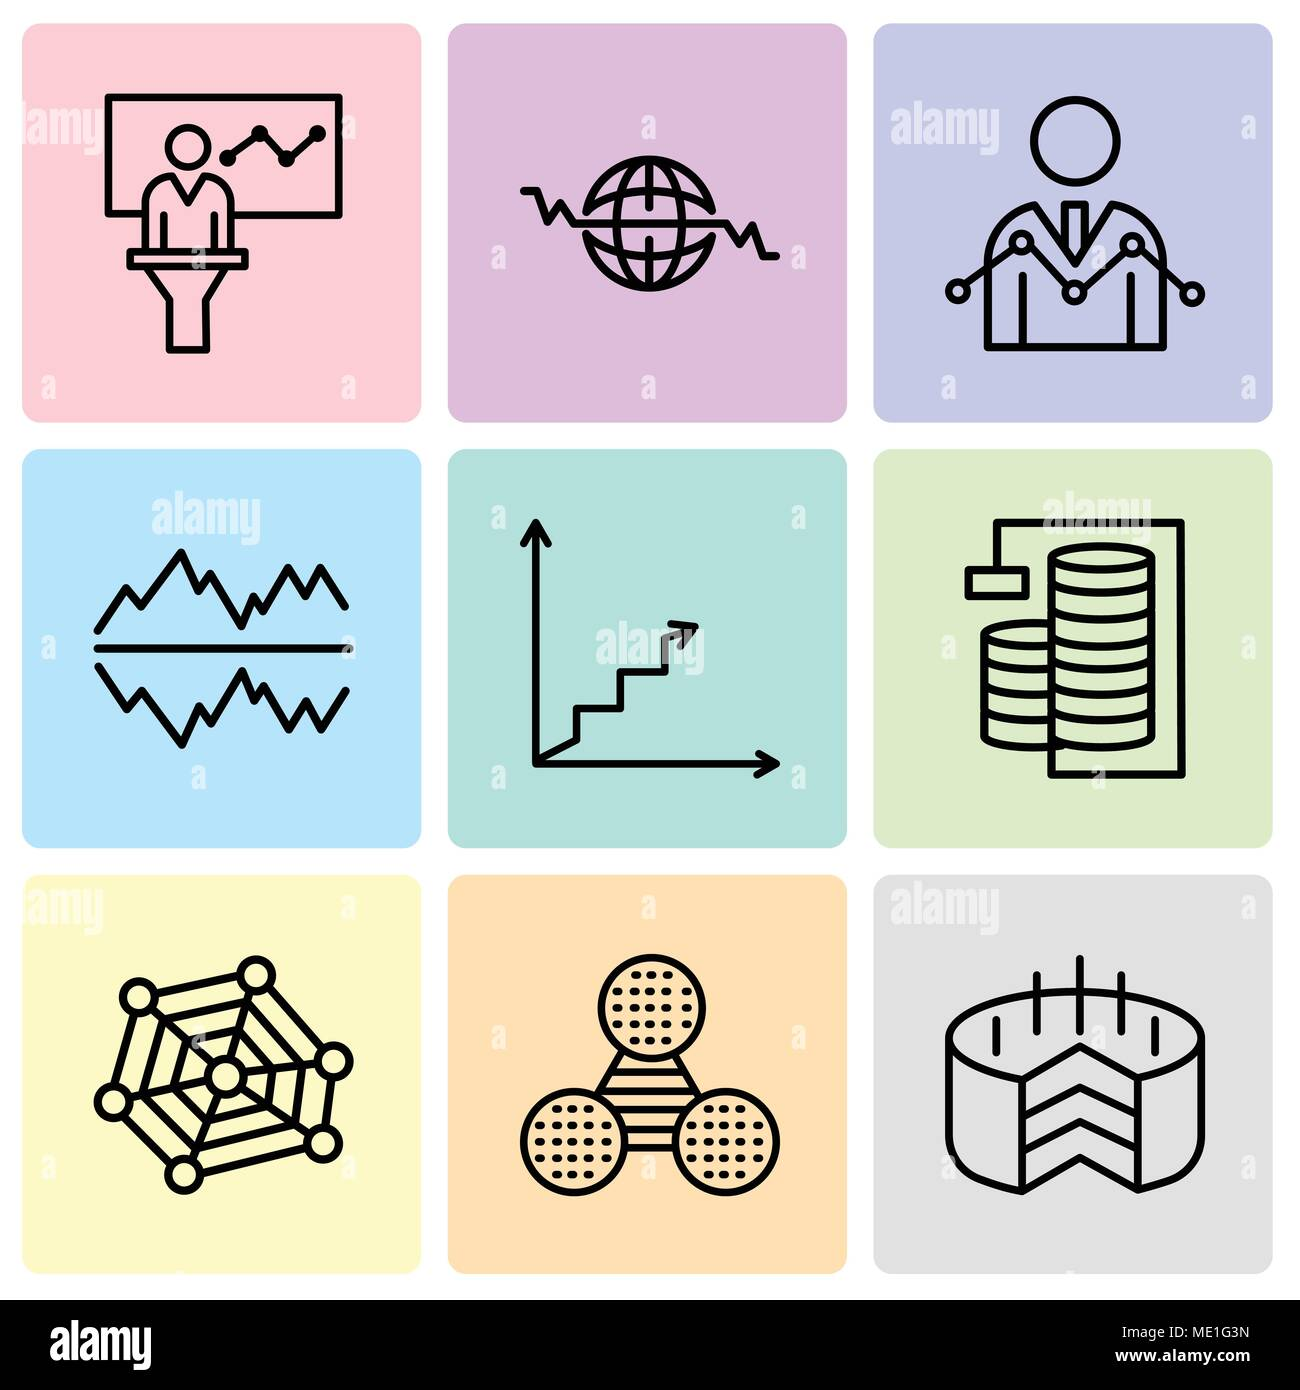 Set Of 9 simple editable icons such as Folder Connected Circuit, Pie graphic comparison, radar chart with pentagon, Database Analysis, Data analytics  - Stock Image